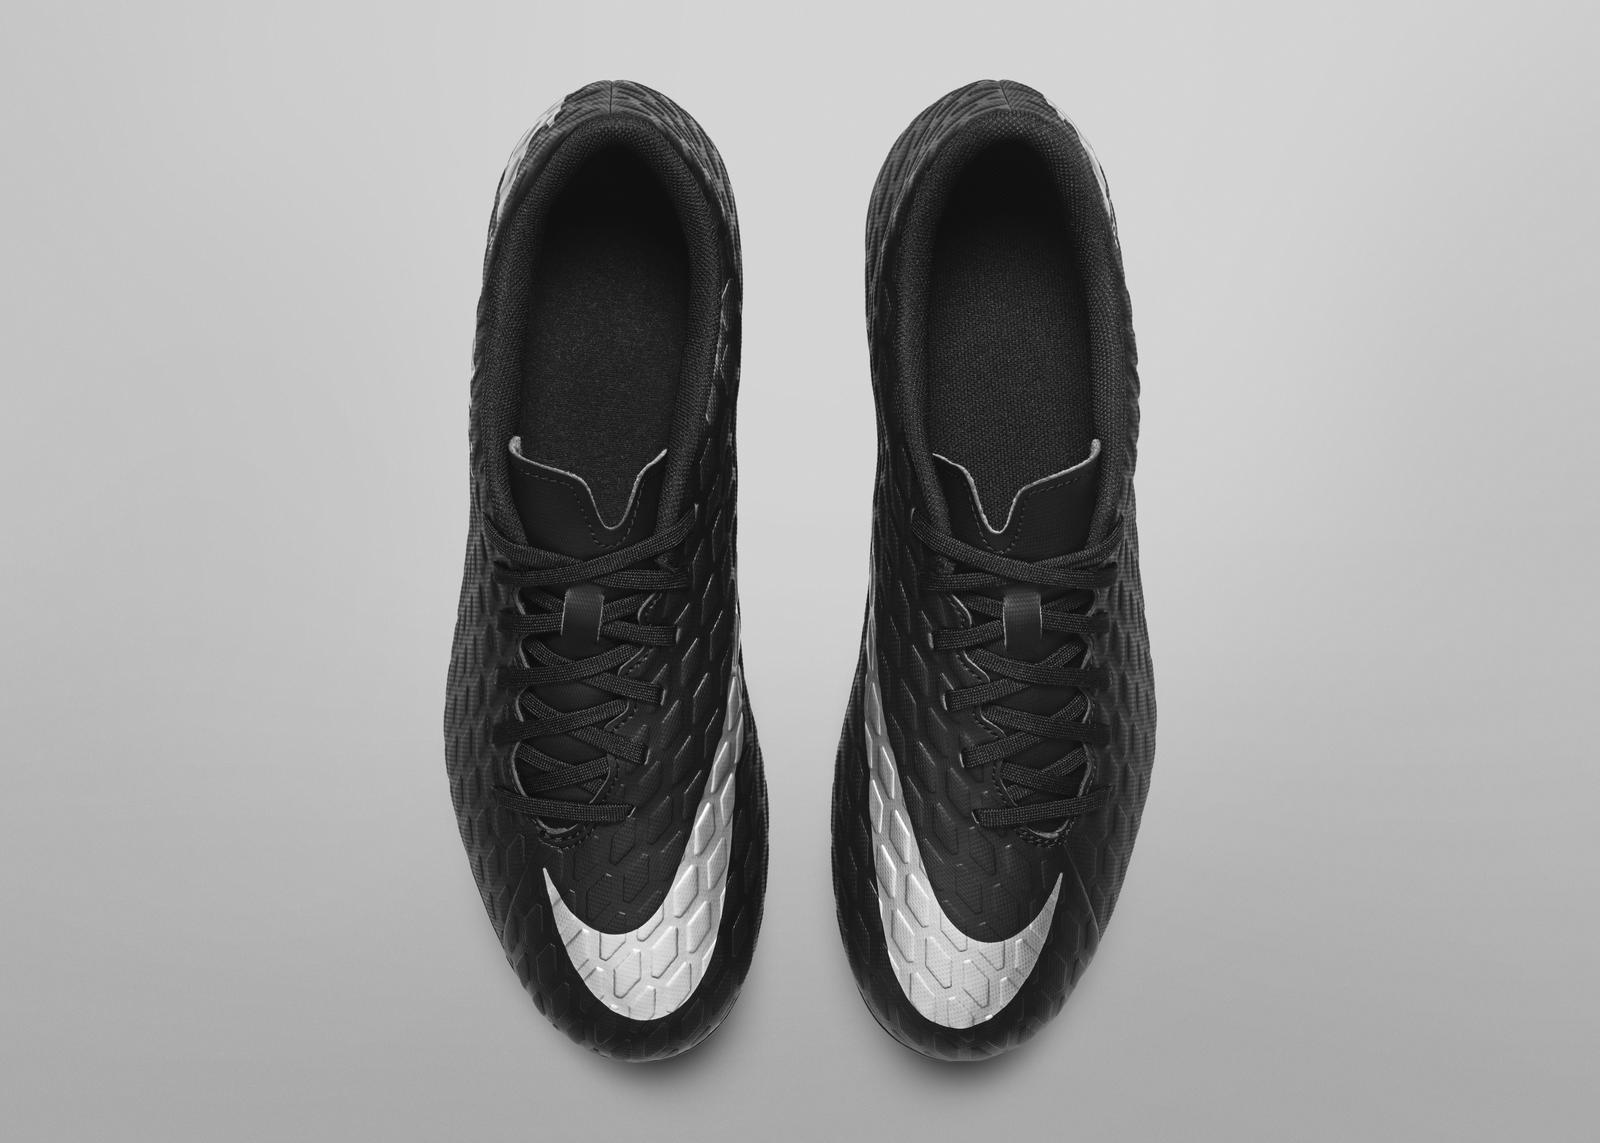 Sp17 gfb hypervenom 3 black 852547 001 hypervenom phade fg 4 8 rectangle 1600